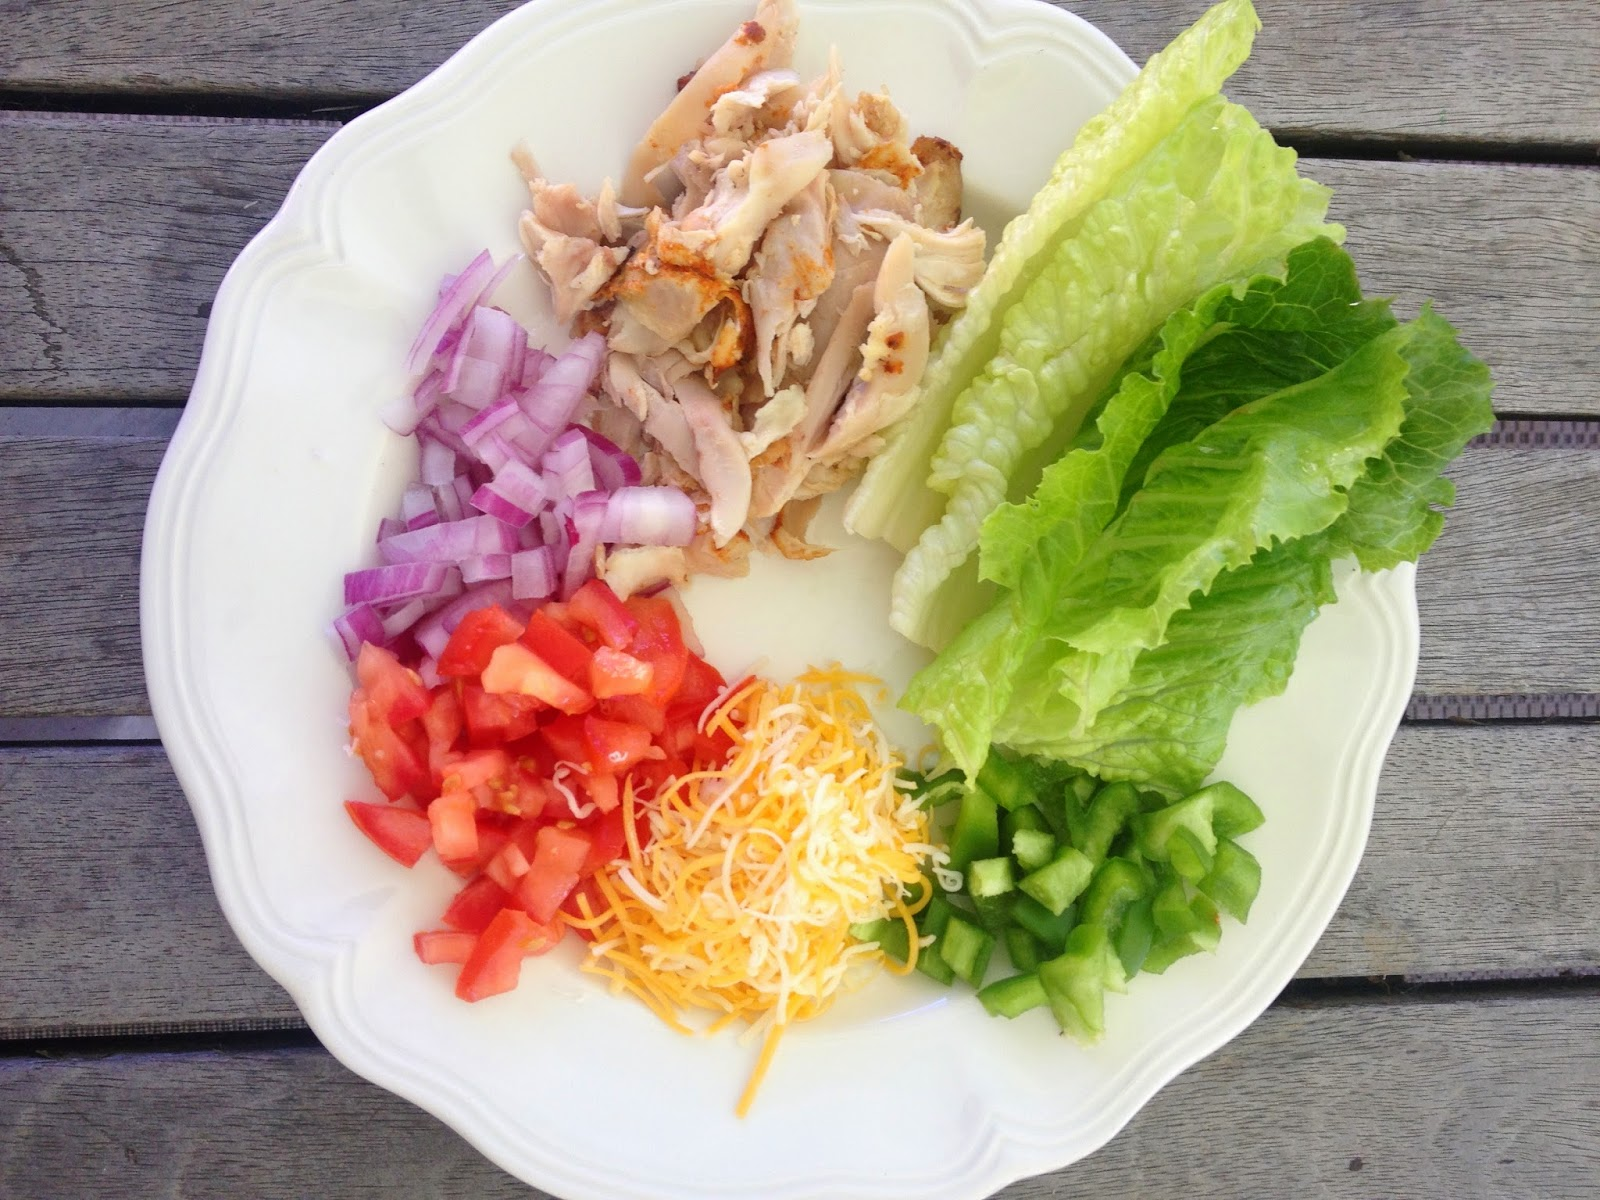 Easy Chicken Lettuce Wrap Ingredients